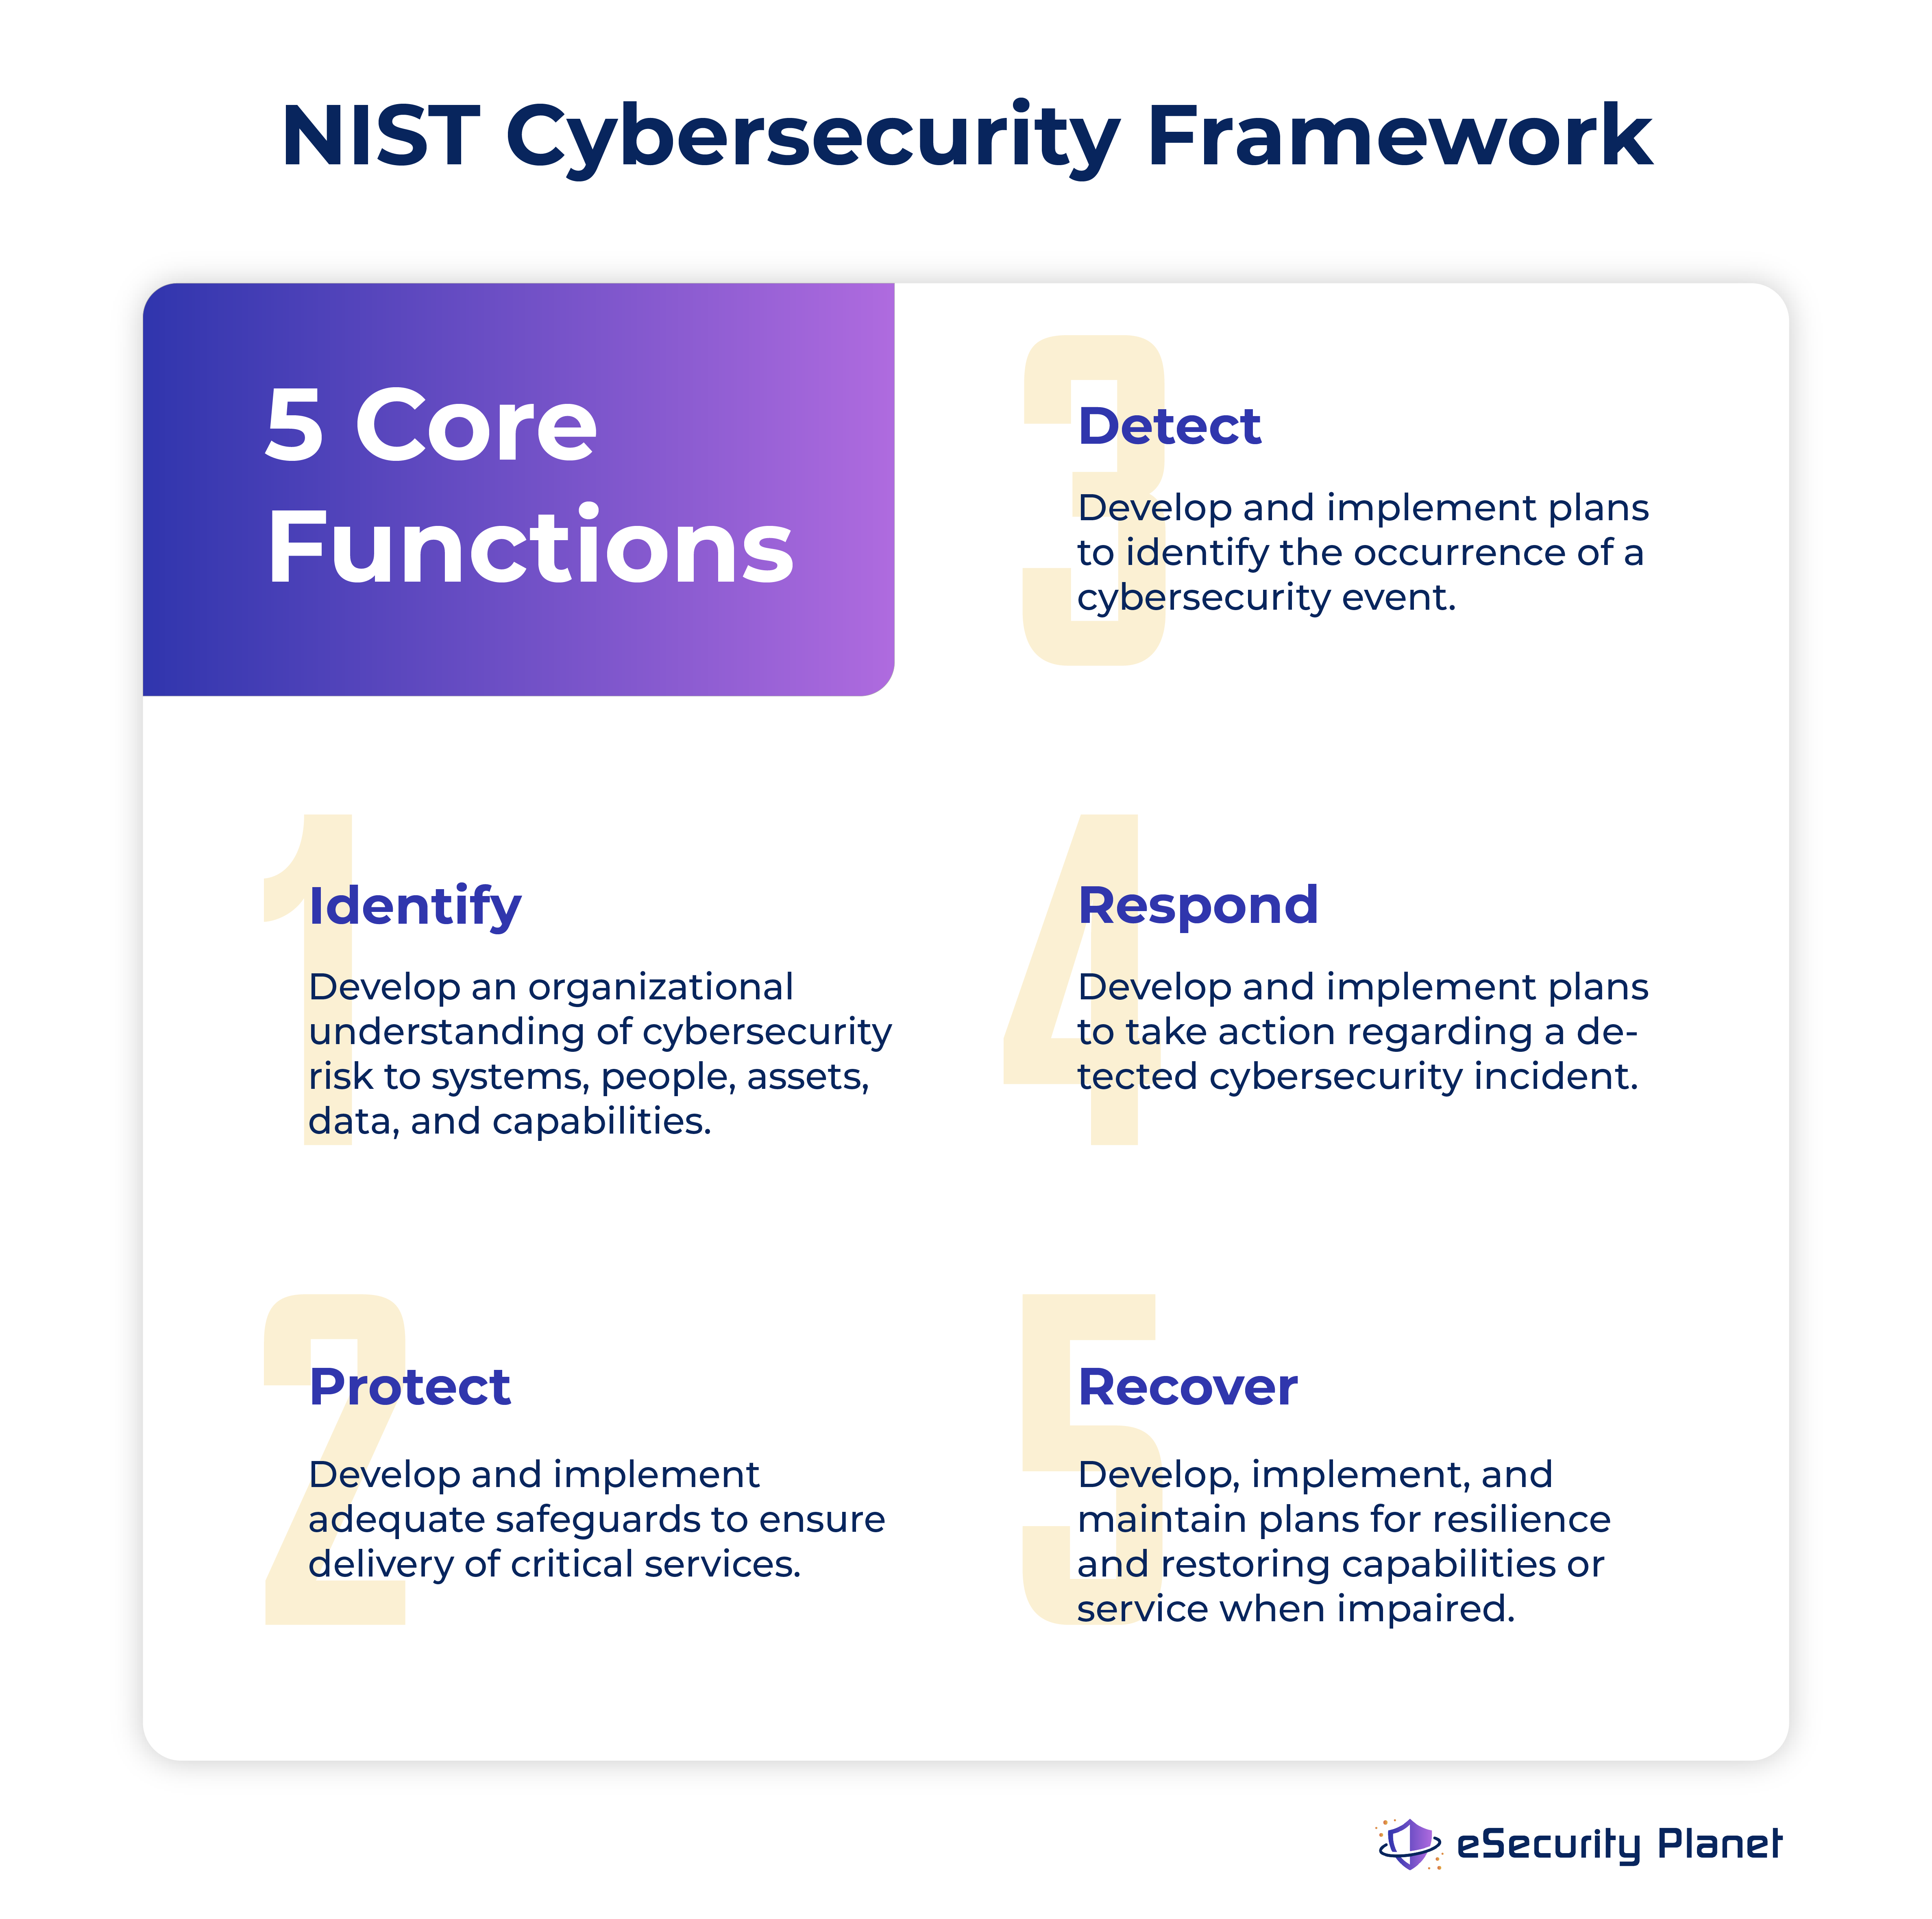 A graphic image showing the 5 core functions provided by the NIST Cybersecurity Framework are 1. Identify, 2. Protect, 3. Detect, 4. Respond, and 5. Recover.